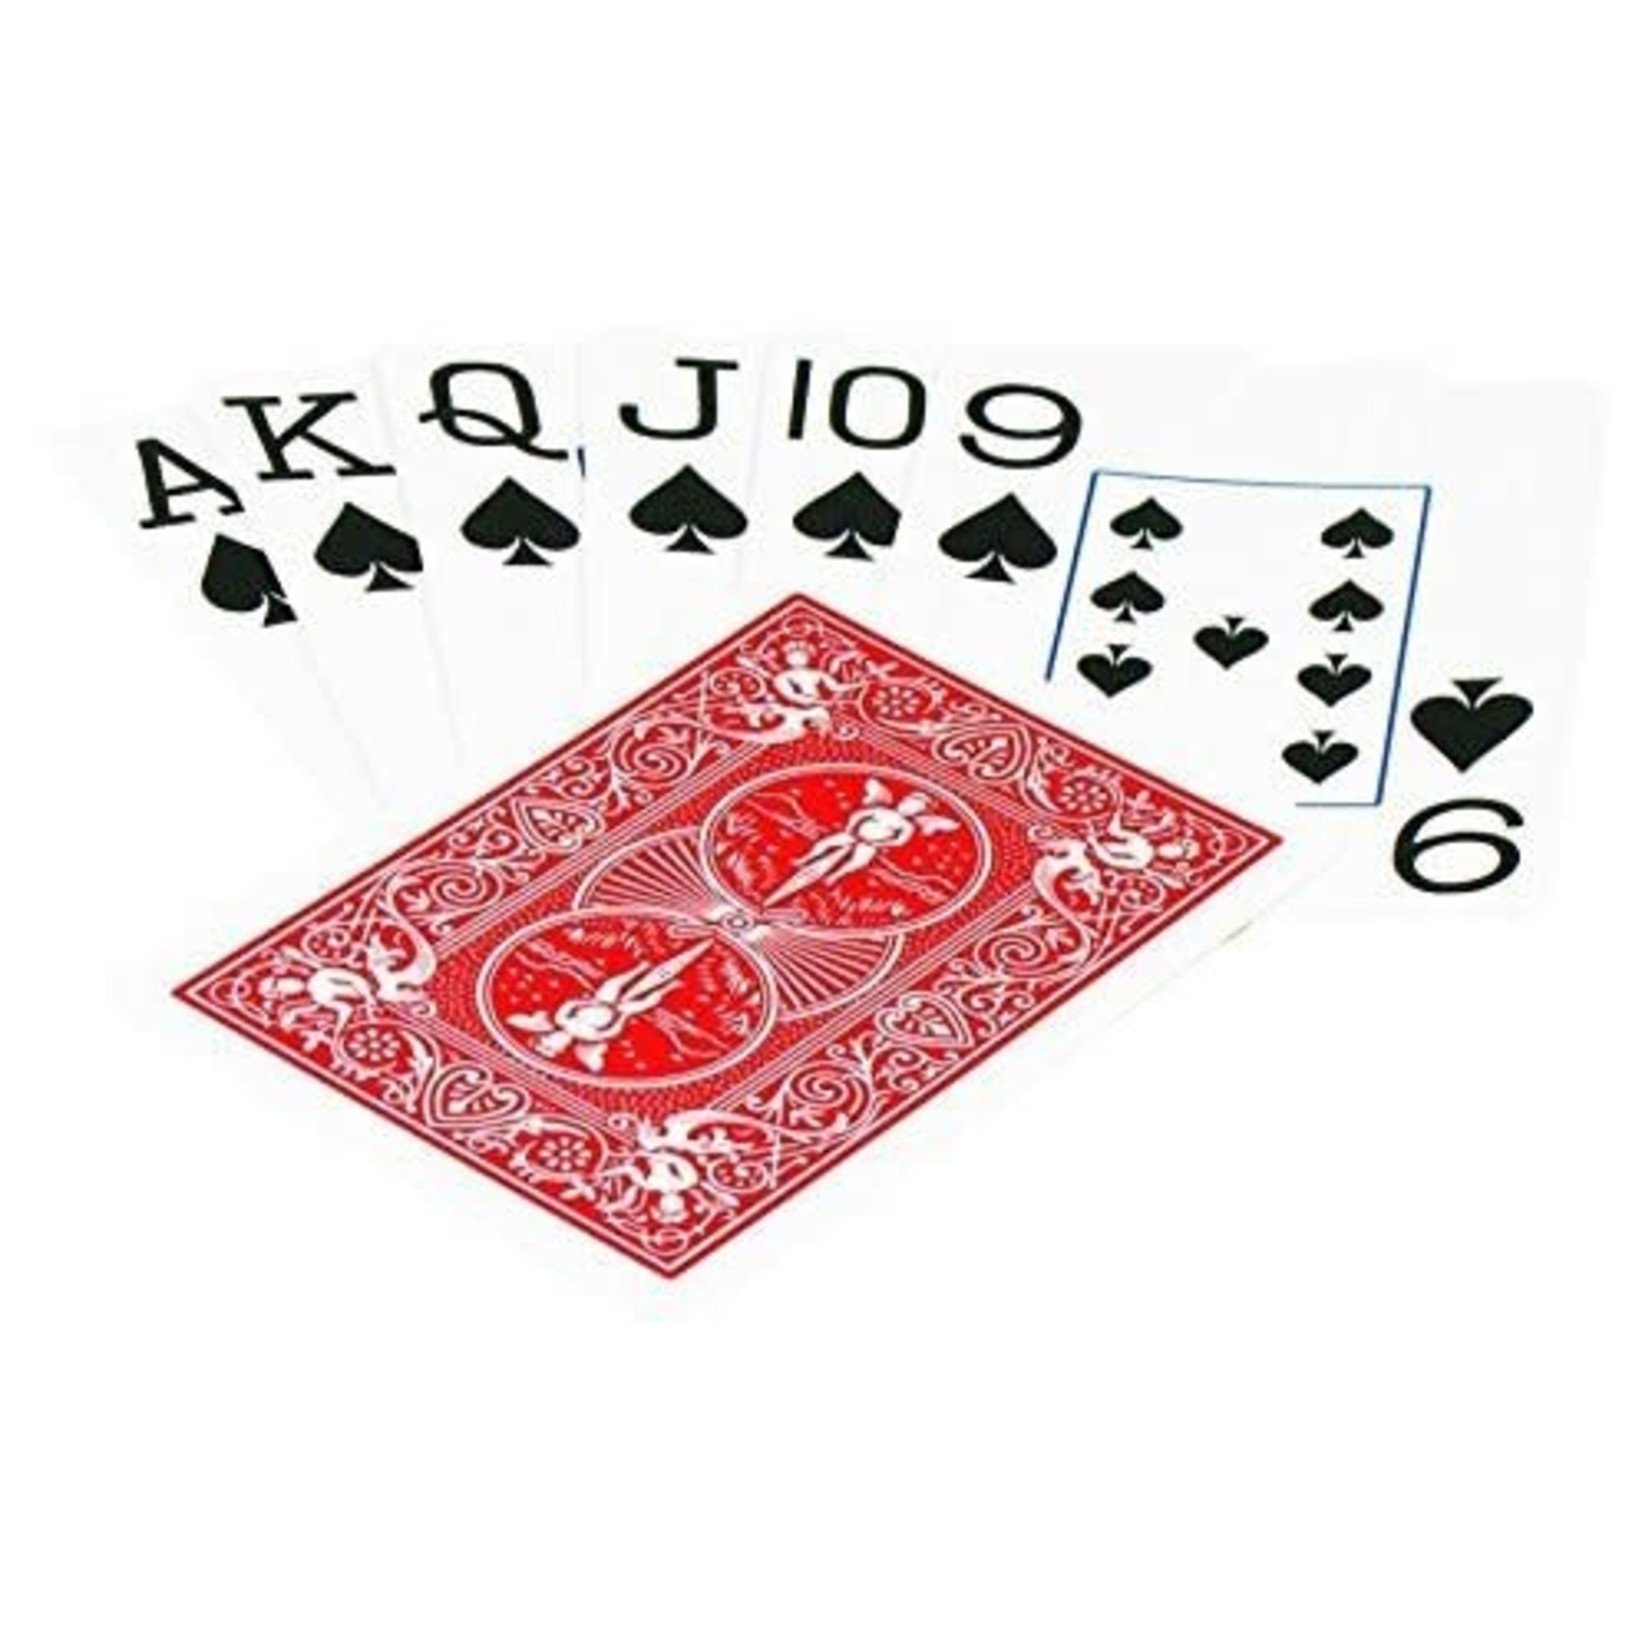 The United States Playing Card Company Bicycle Pinochle Jumbo Index